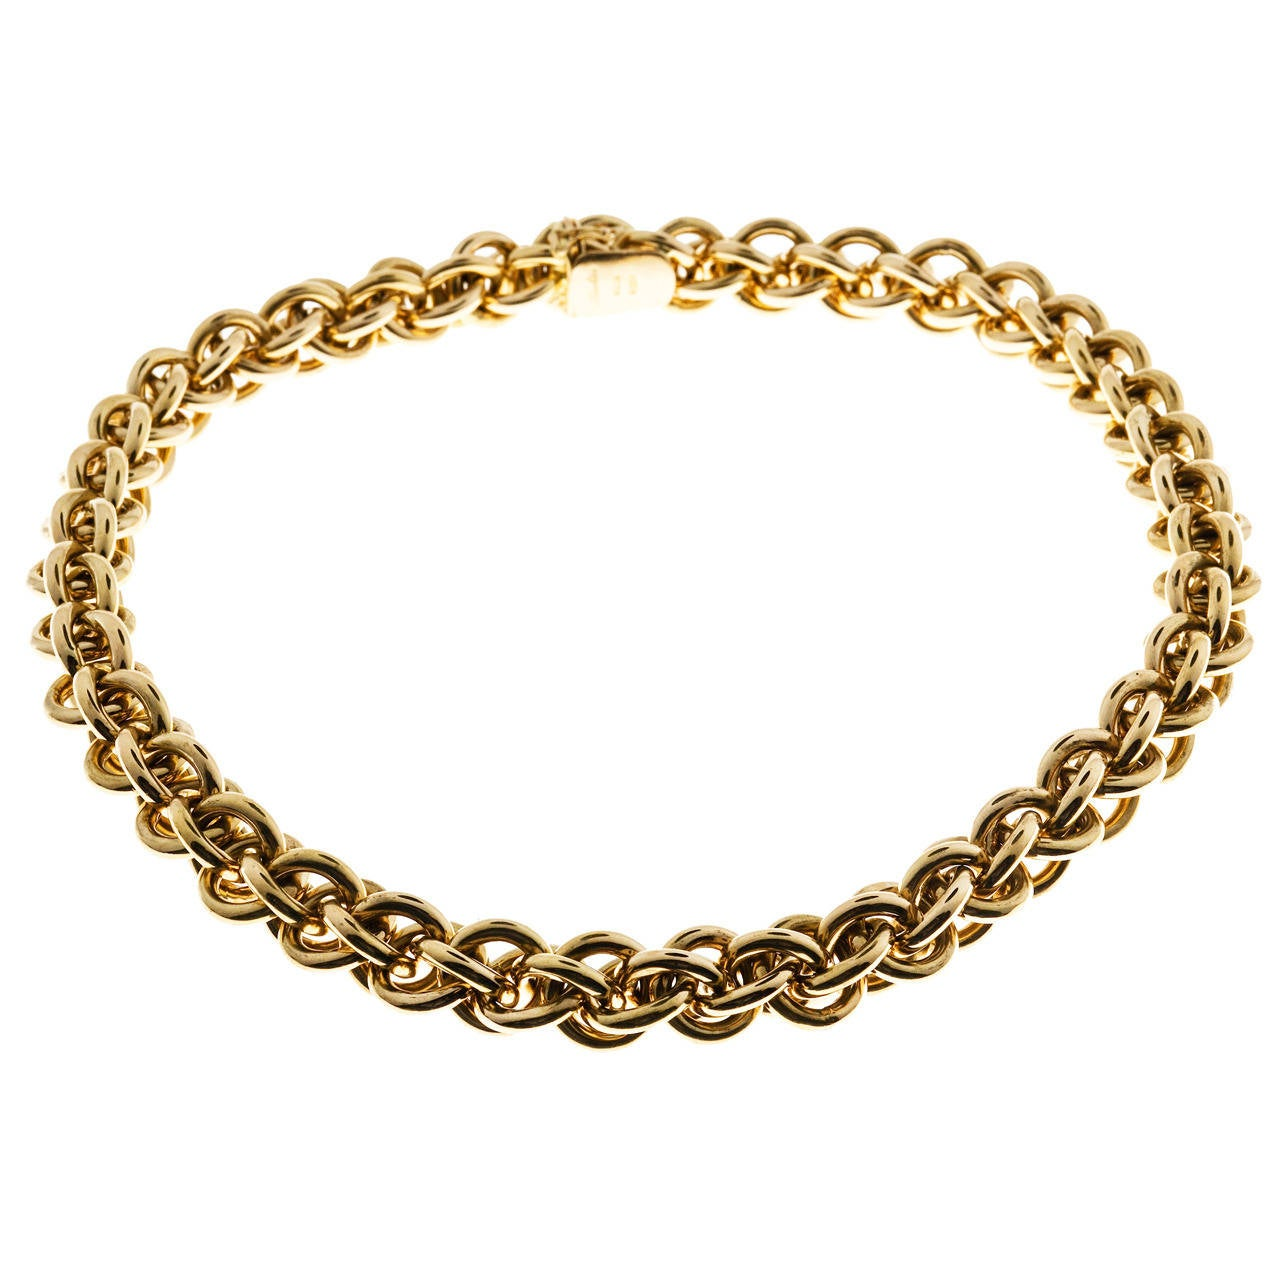 marchisio italian gold woven link necklace for